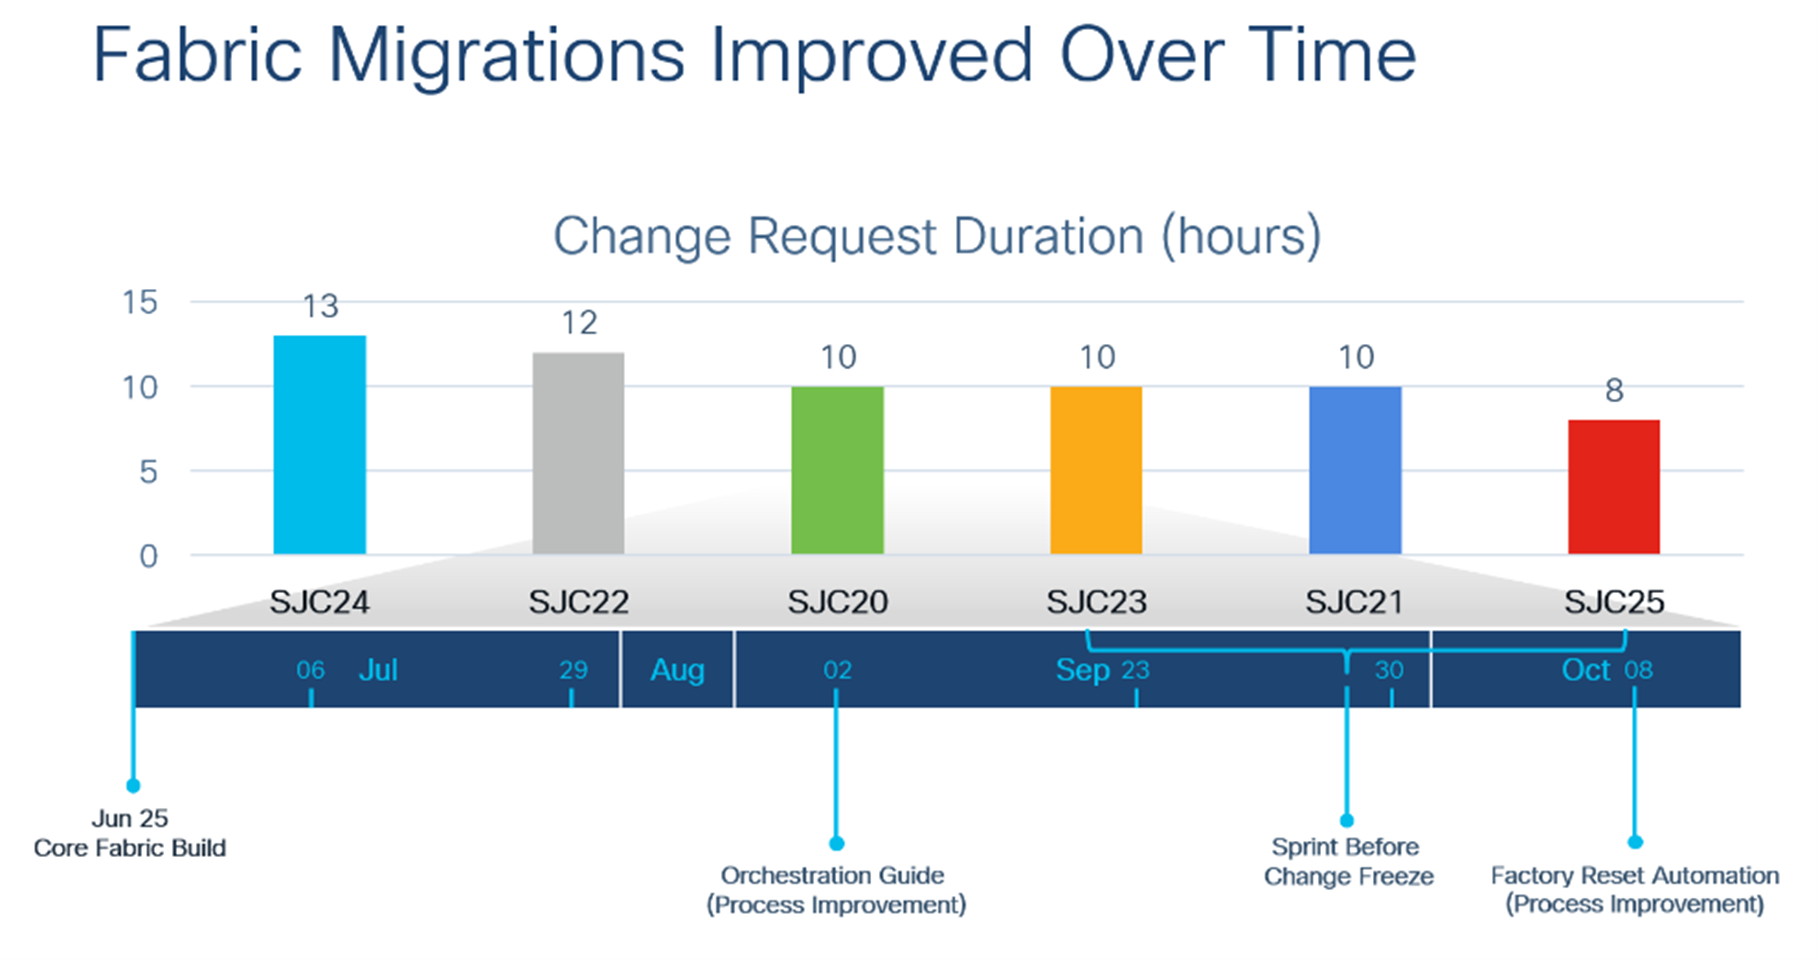 Chart - Fabric Migrations improved over time: Change request duration (hours)